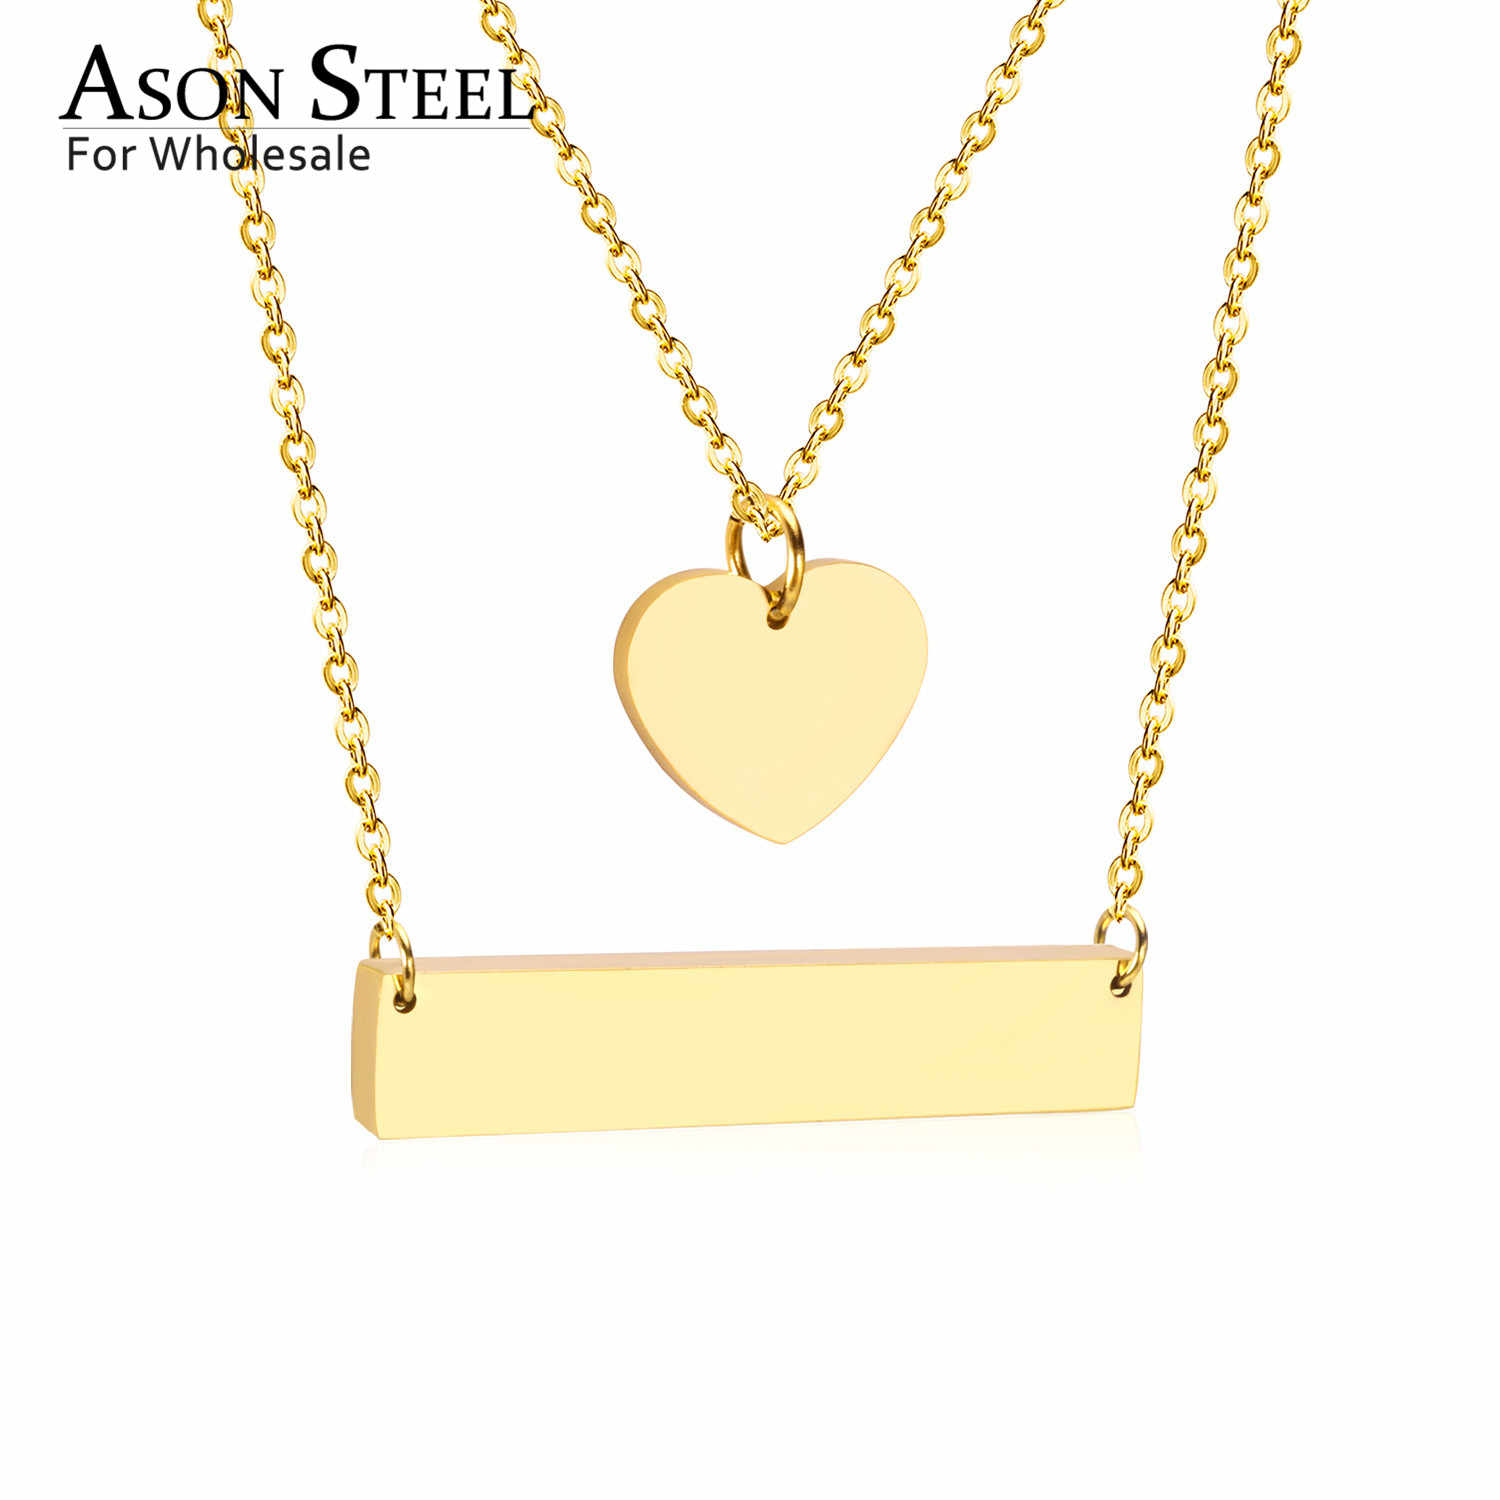 ASONSTEEL Fashion Jewelry Women Statement Long Necklace Heart Pendant Stainless Steel Chain Necklaces Pendants Set